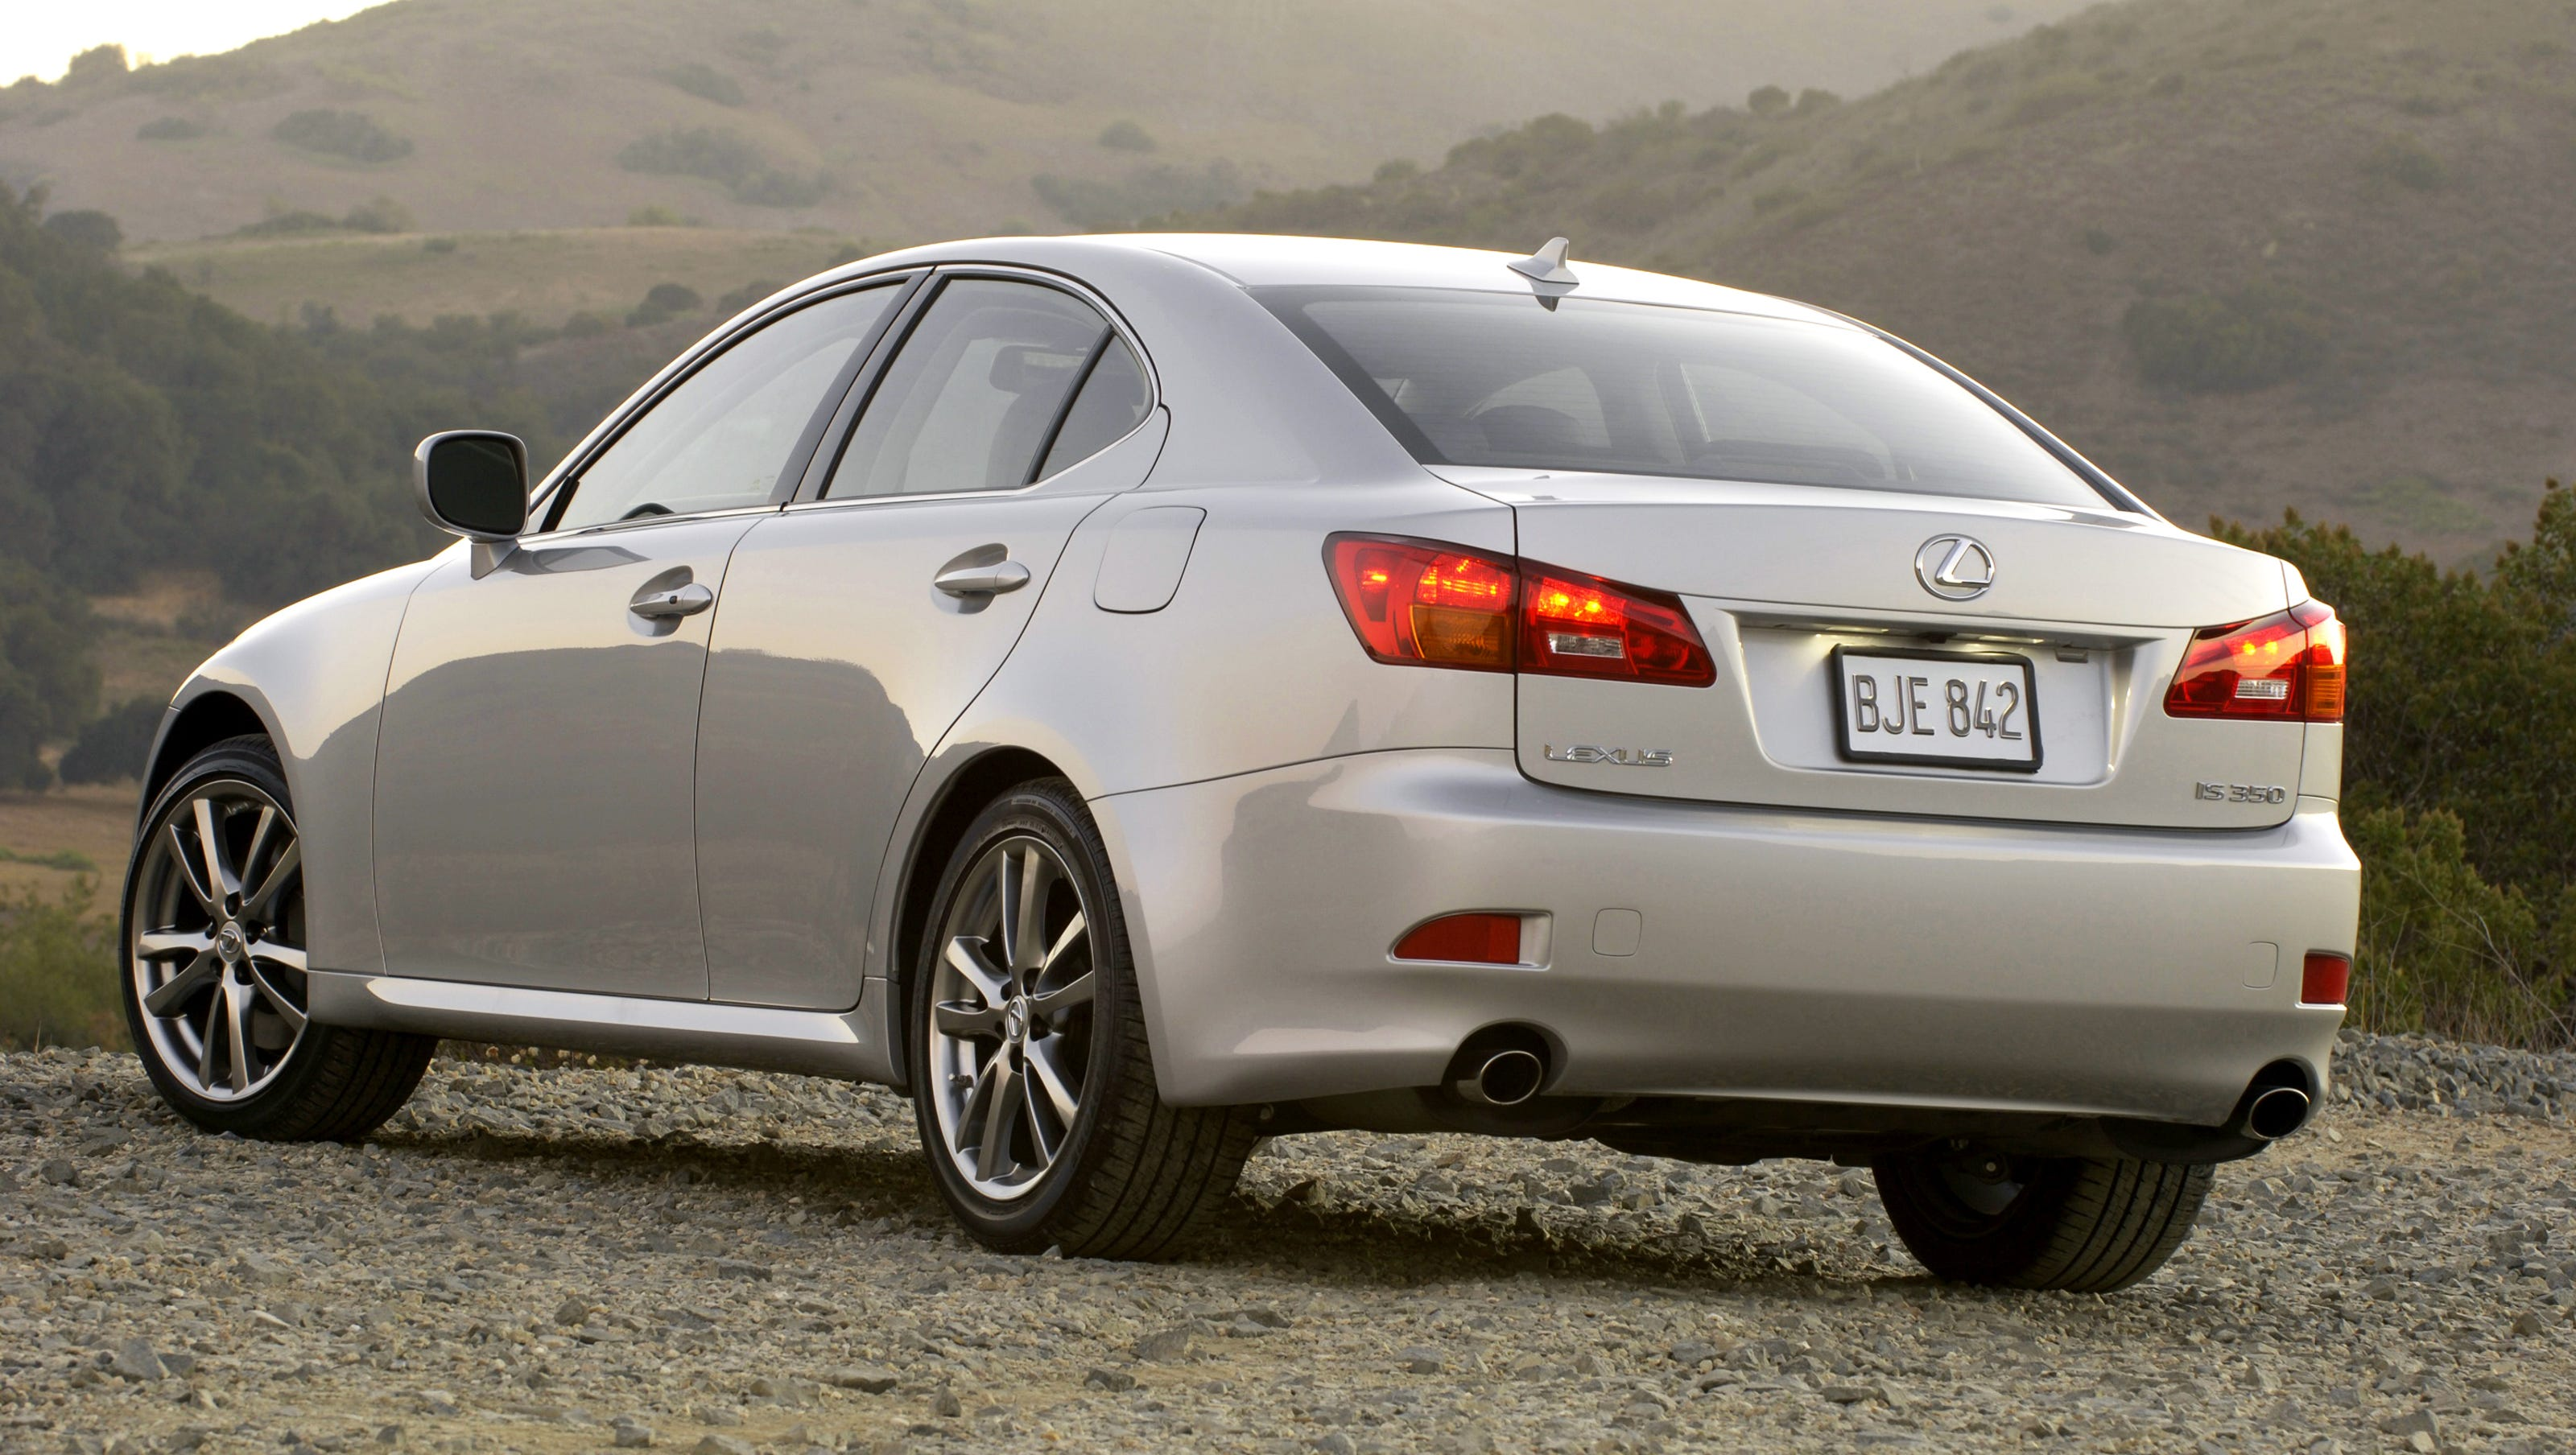 Lexus Recalls 121k V6 Cars To Fix Fuel Leaks That Can Cause Fires